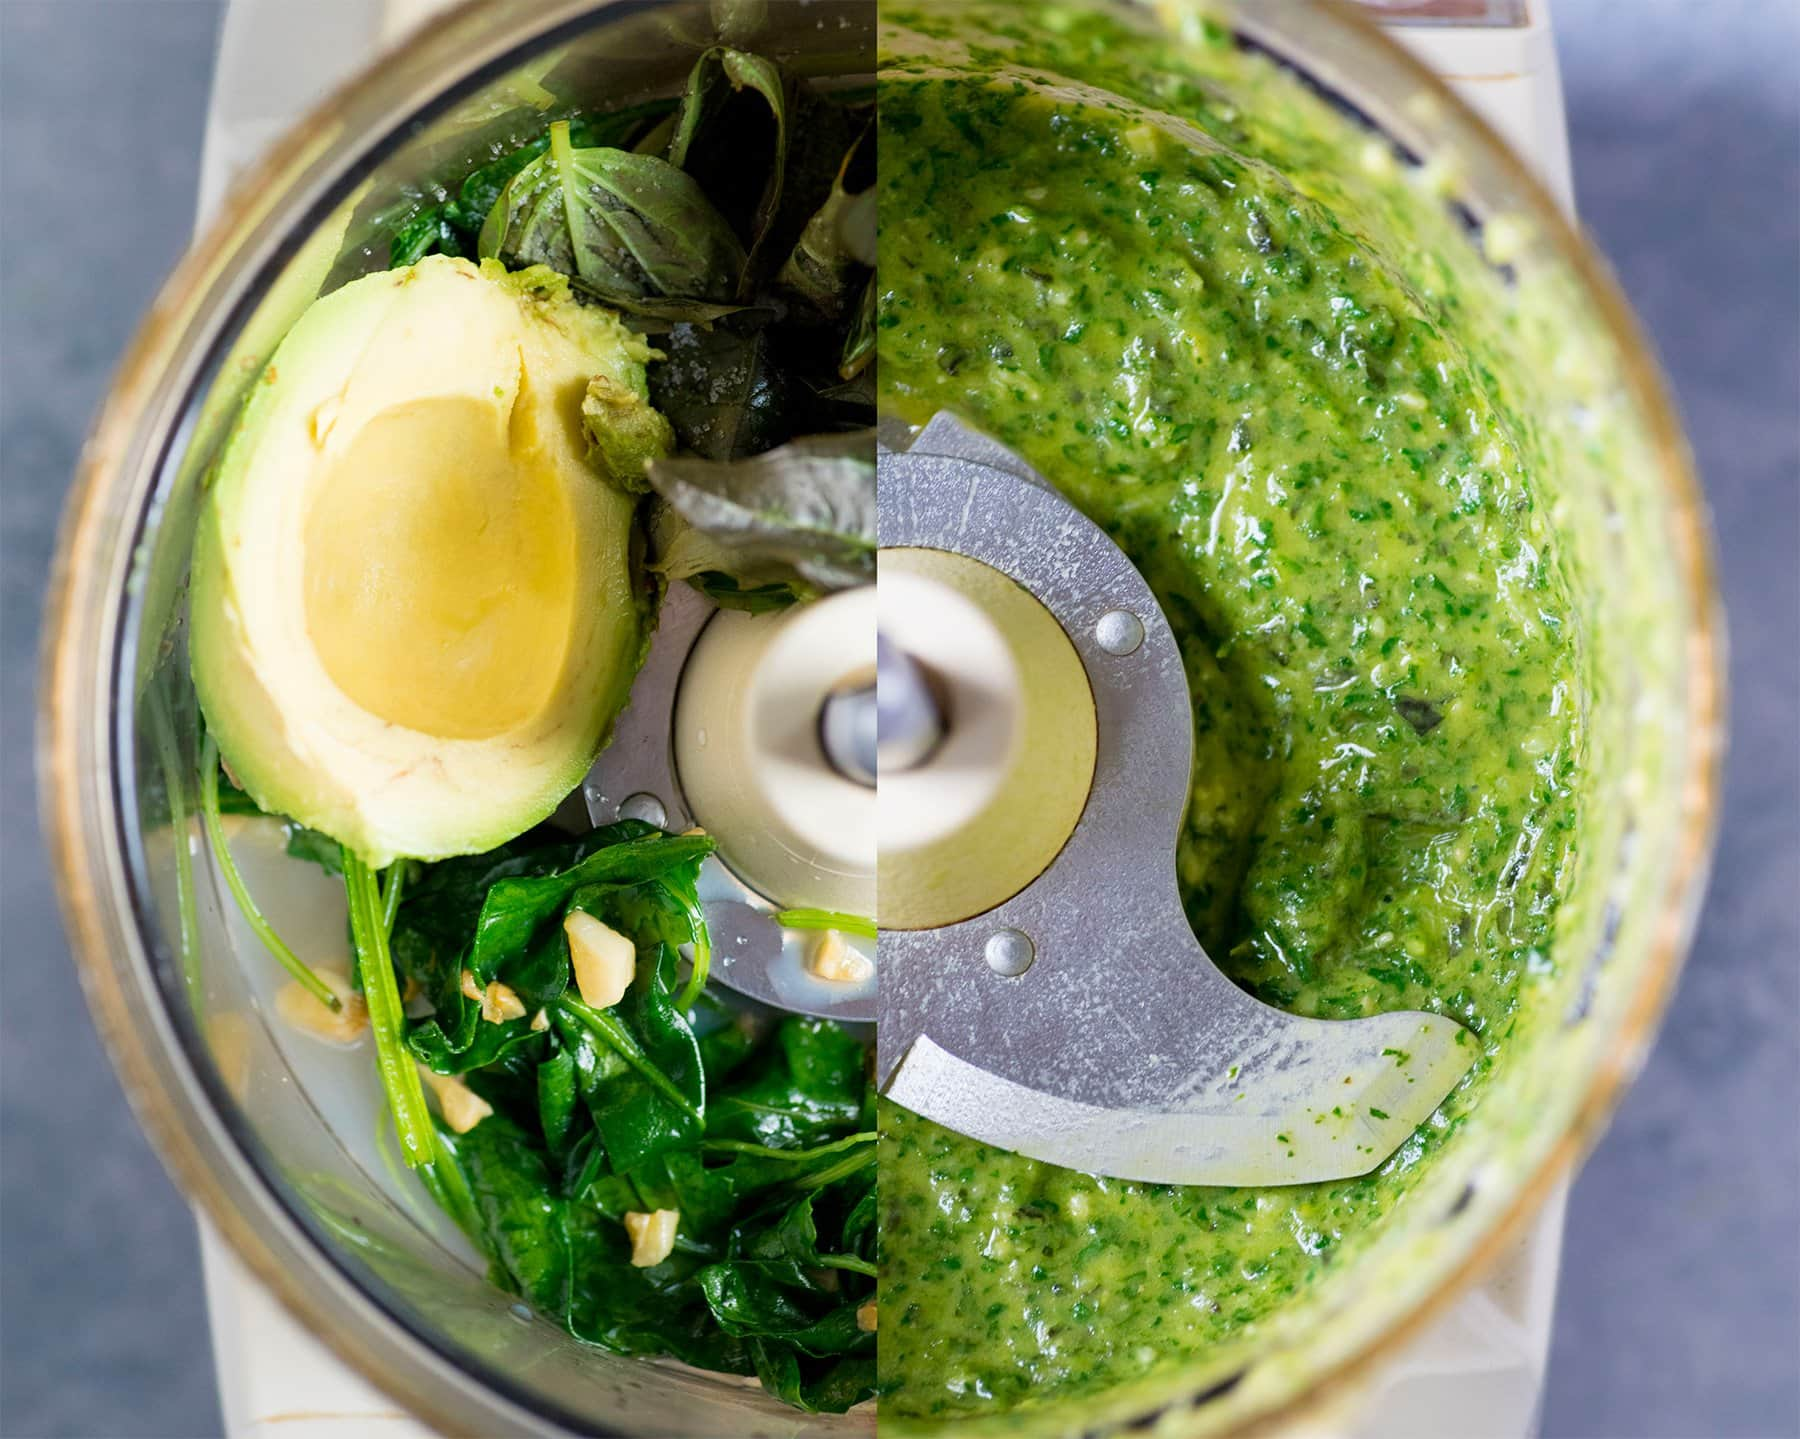 Overhead split-shot of ingredients for pesto in a food processor, with ingredients on the left and the blended pesto on the right